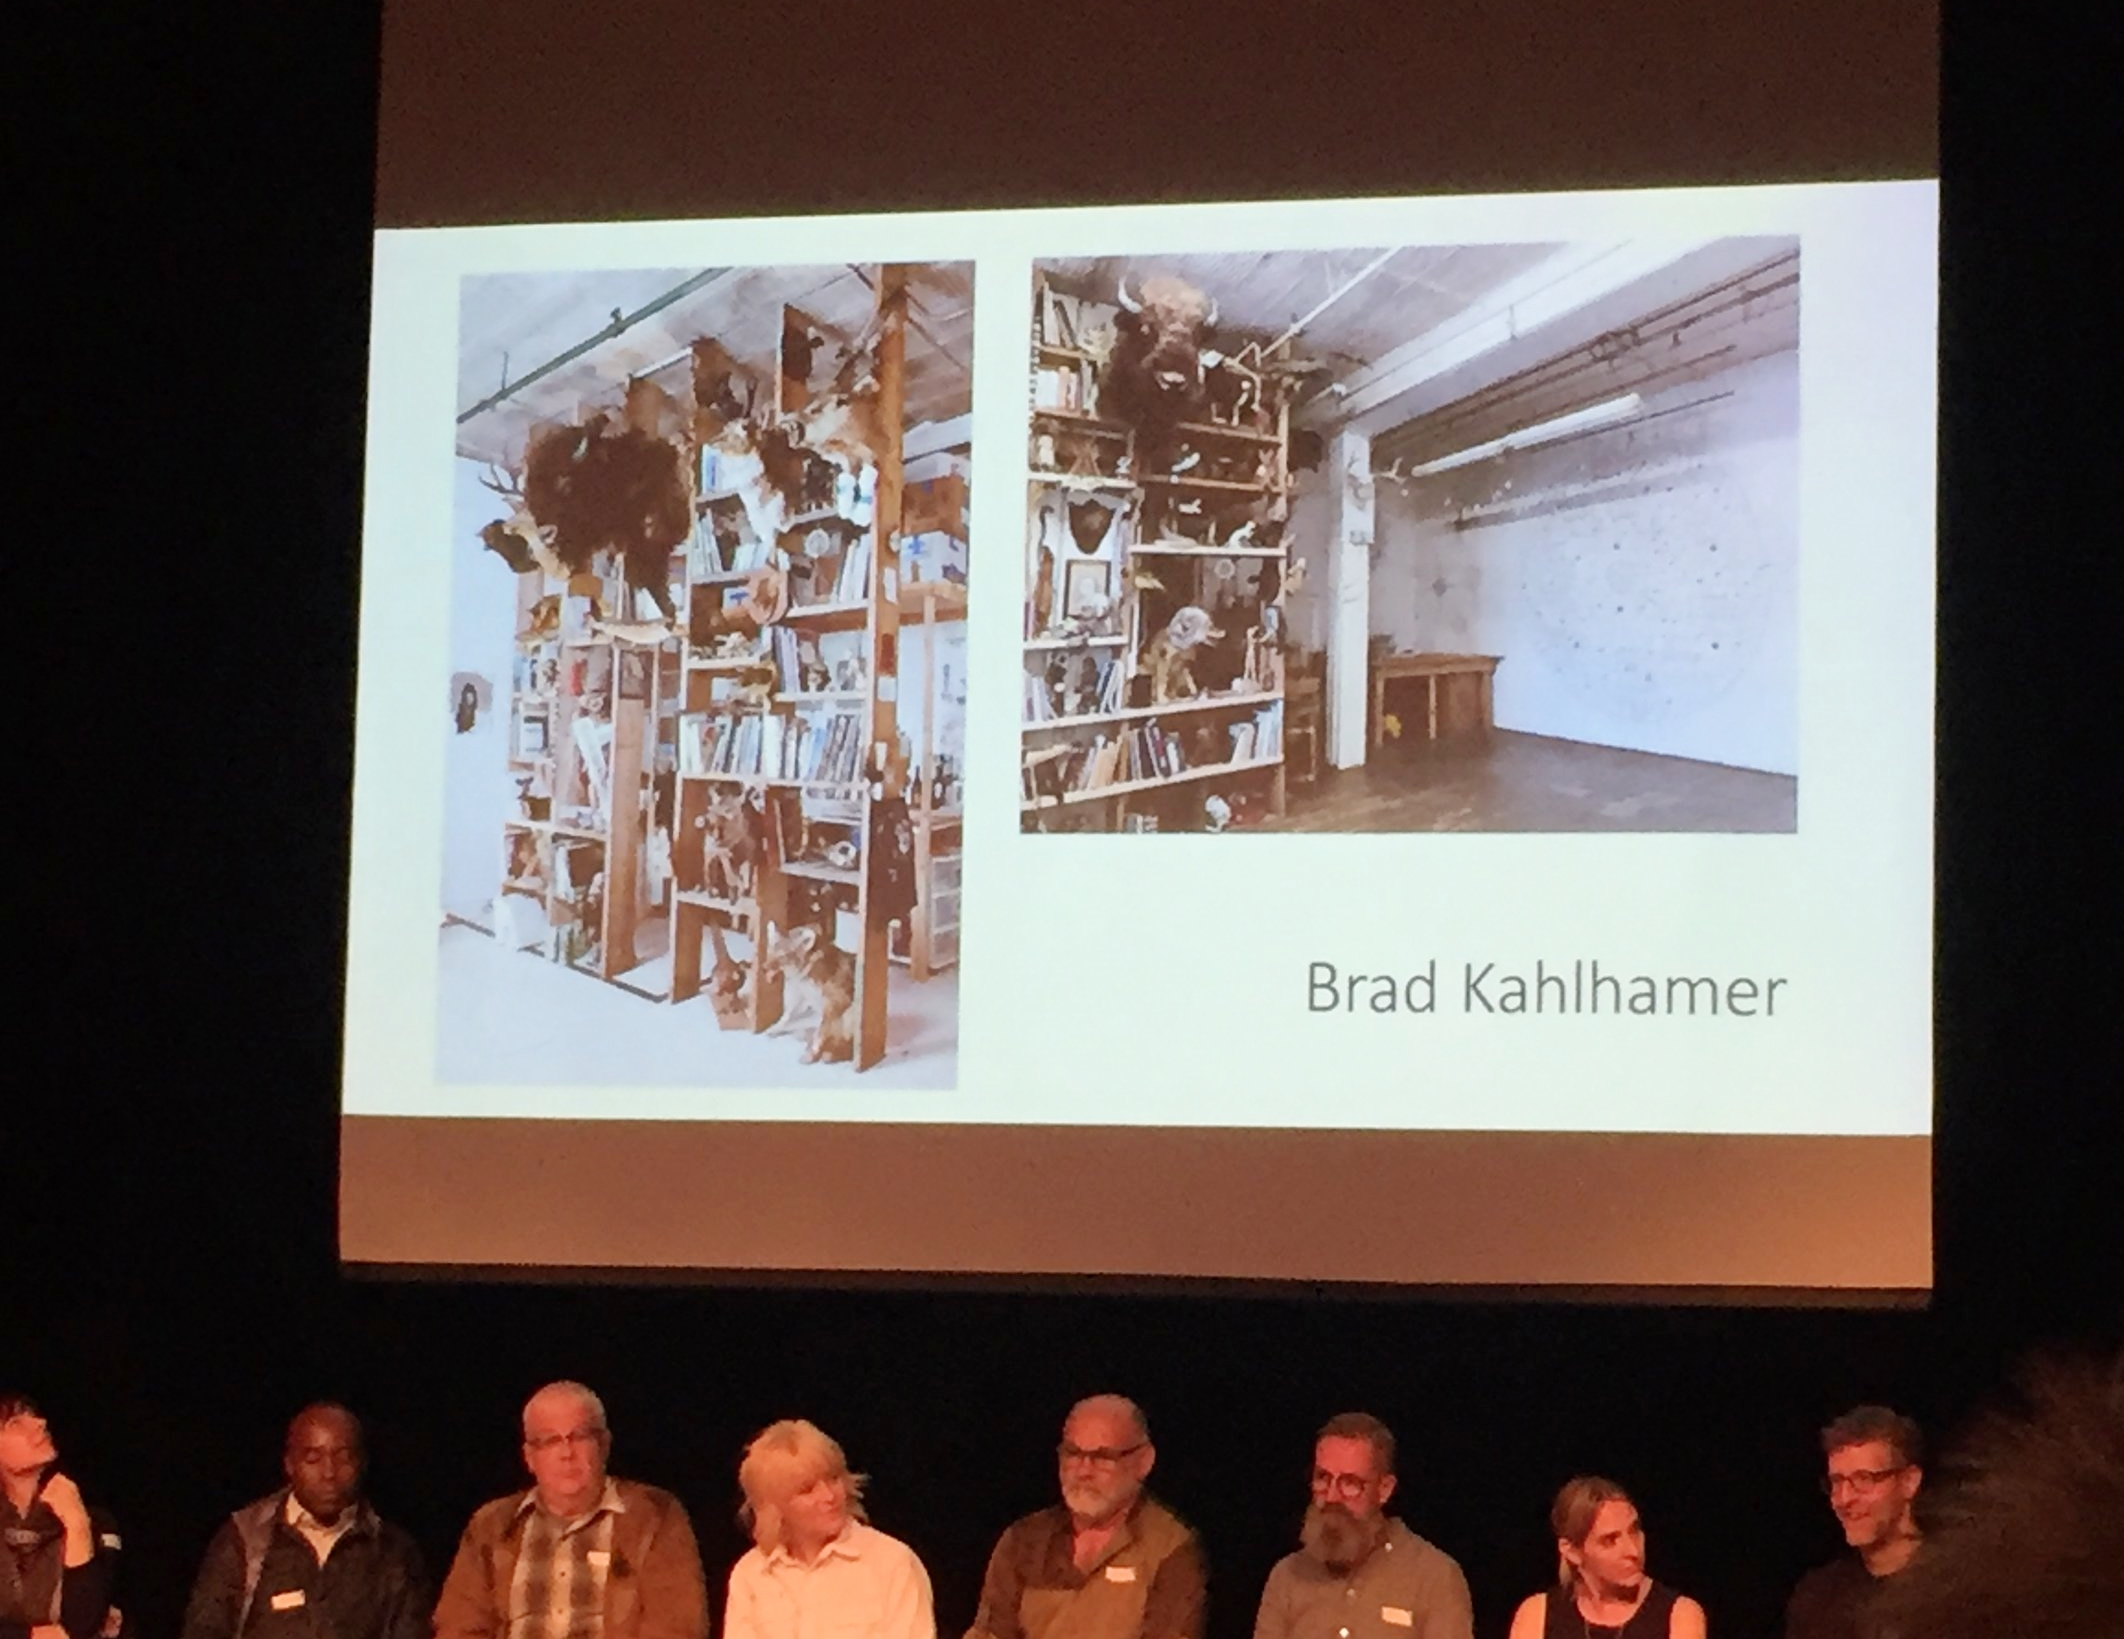 Image from panel discussion, view of Brad Kahlhamer's studio